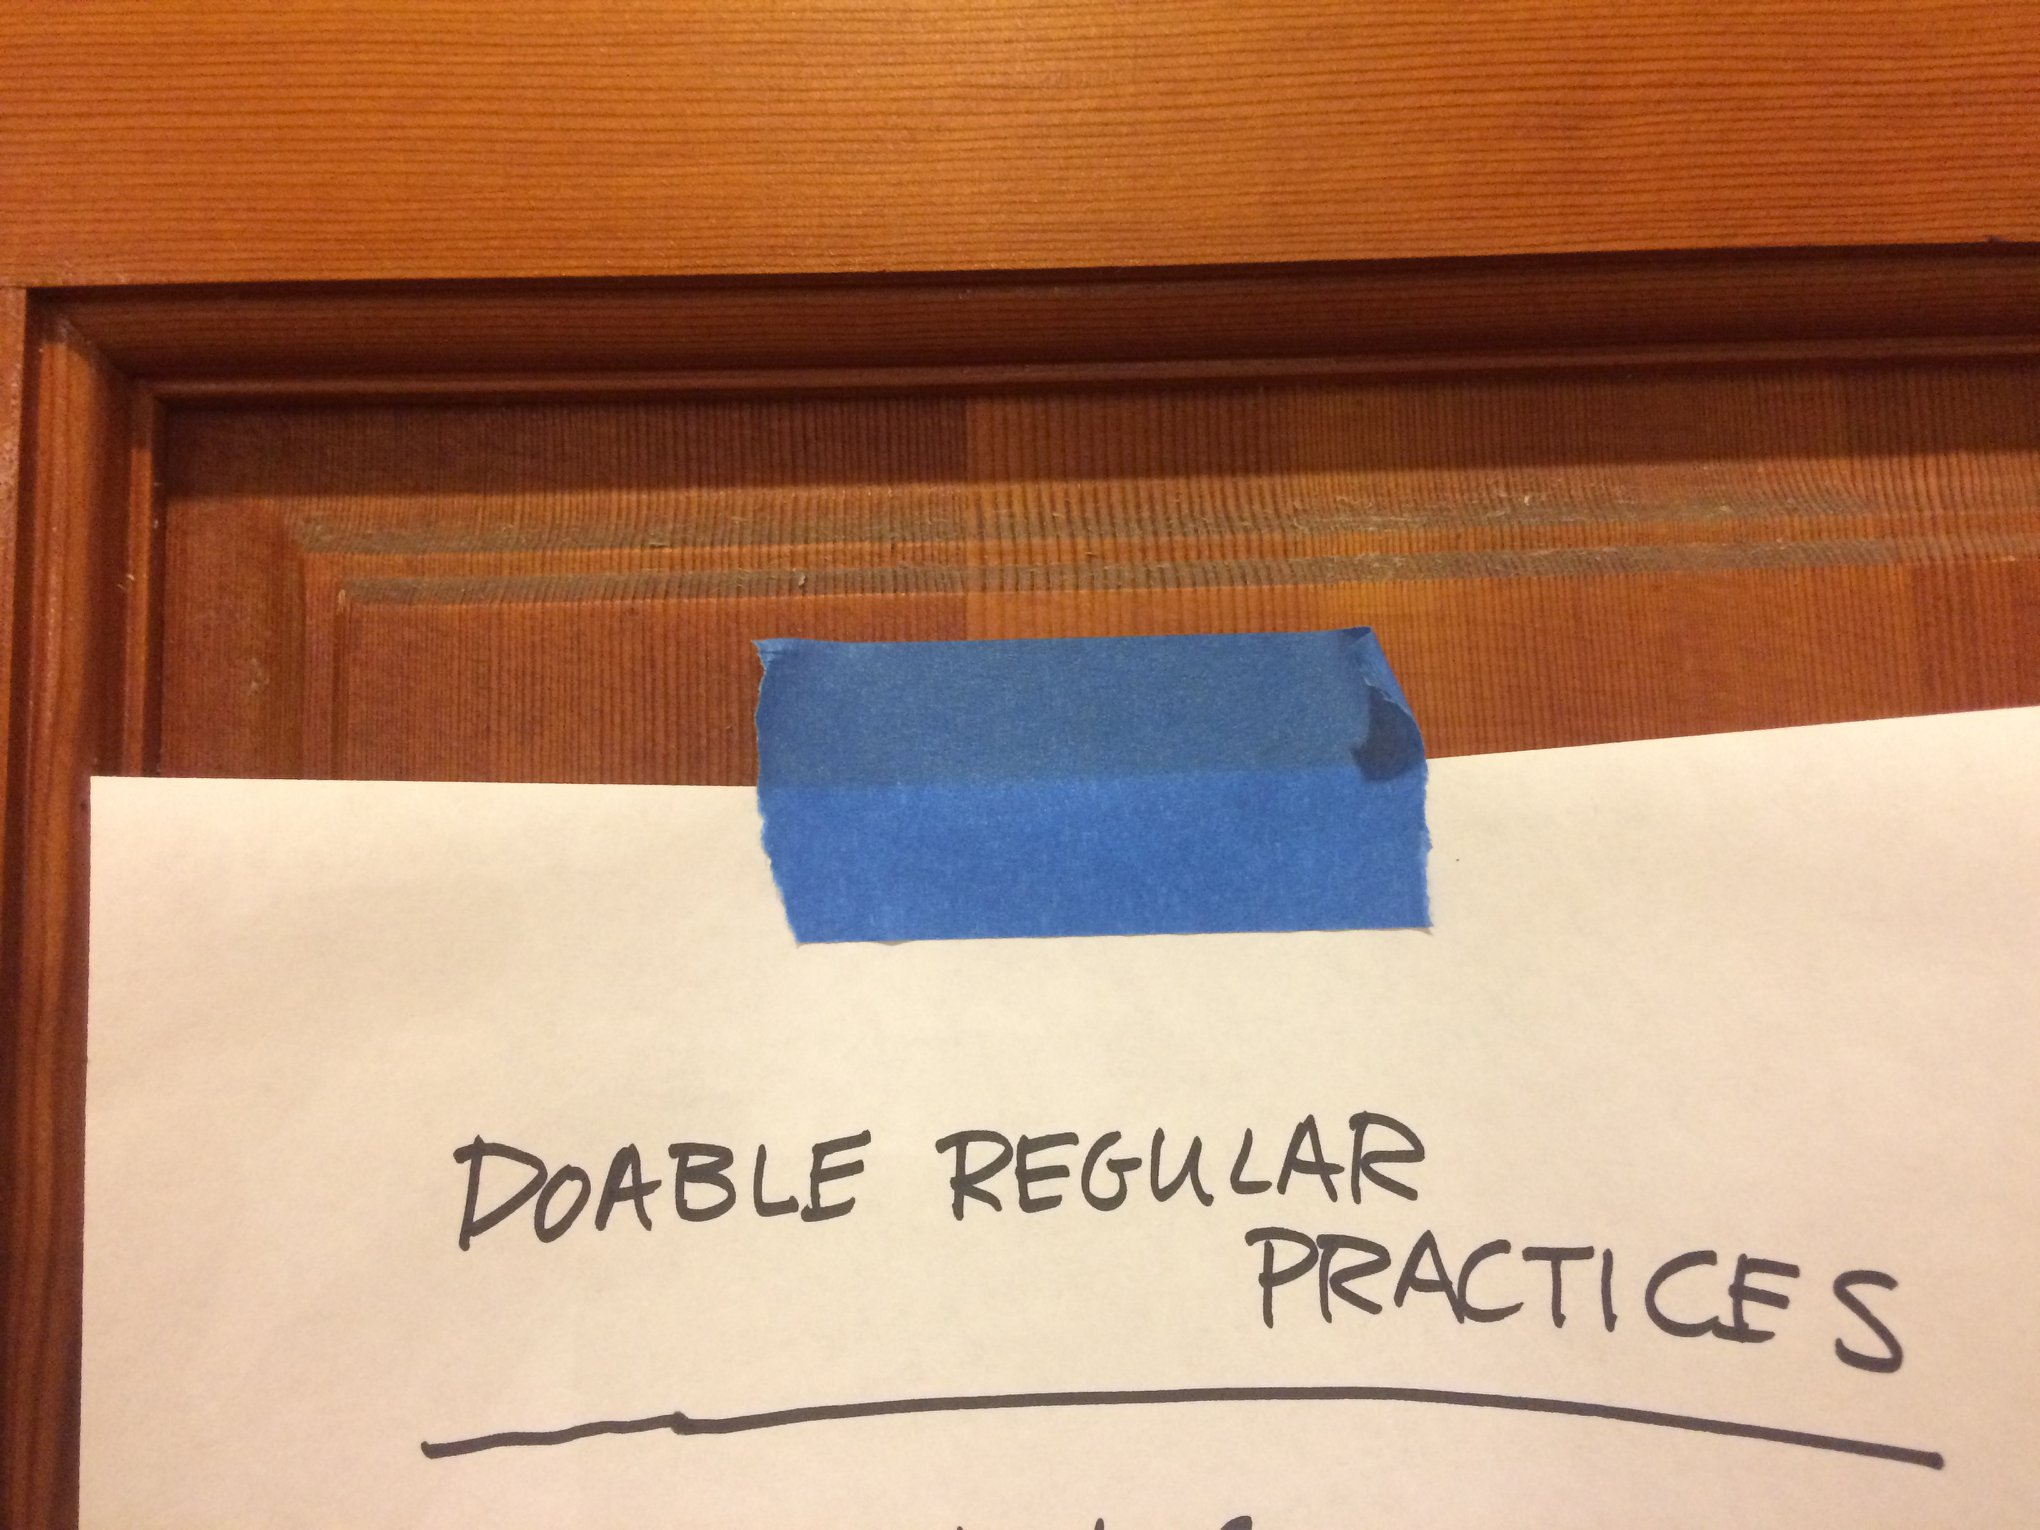 Doable Regular Practice